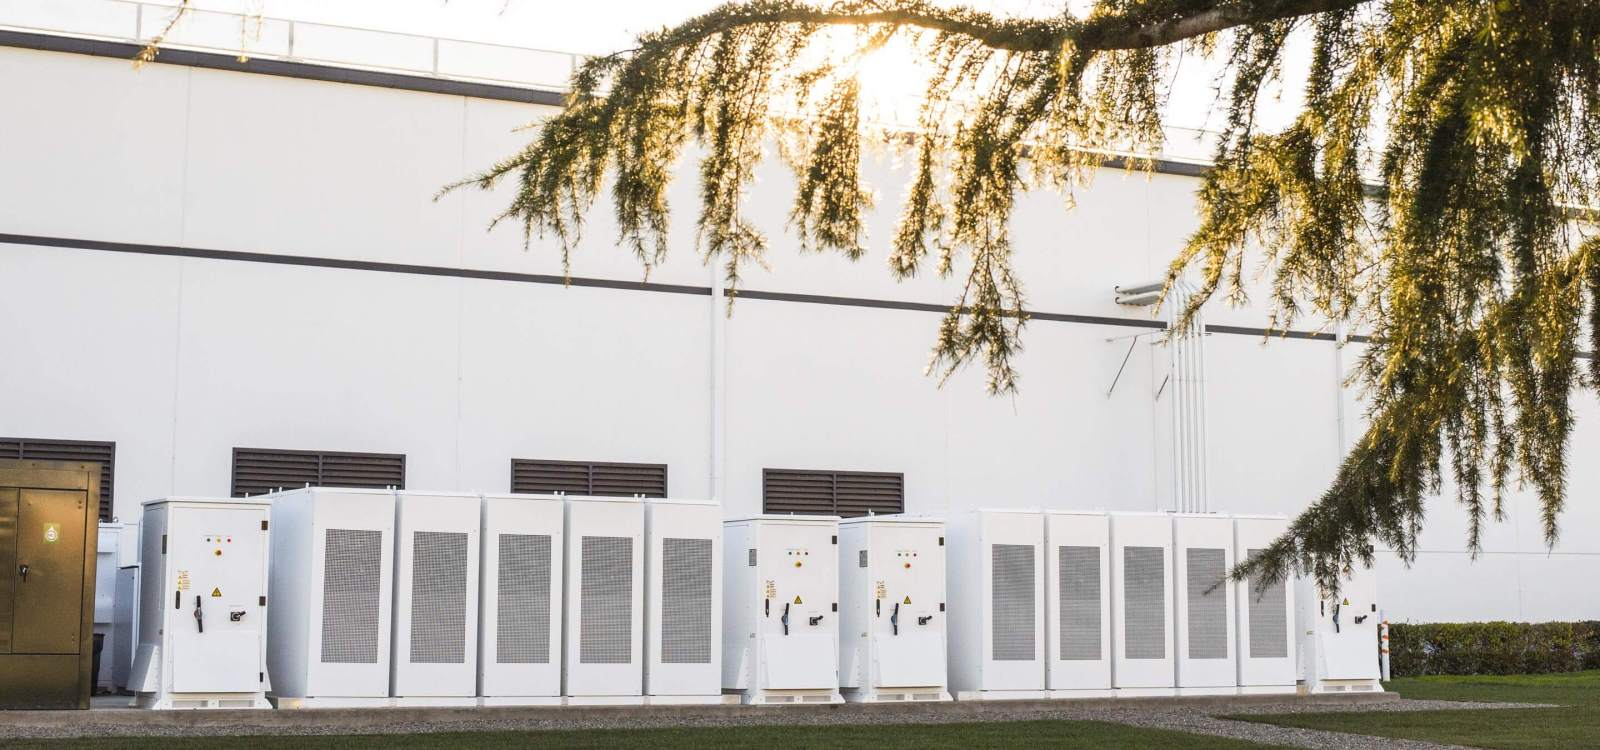 Tesla wins contract with major Australian electric grid to deploy Powerpacks across several sites